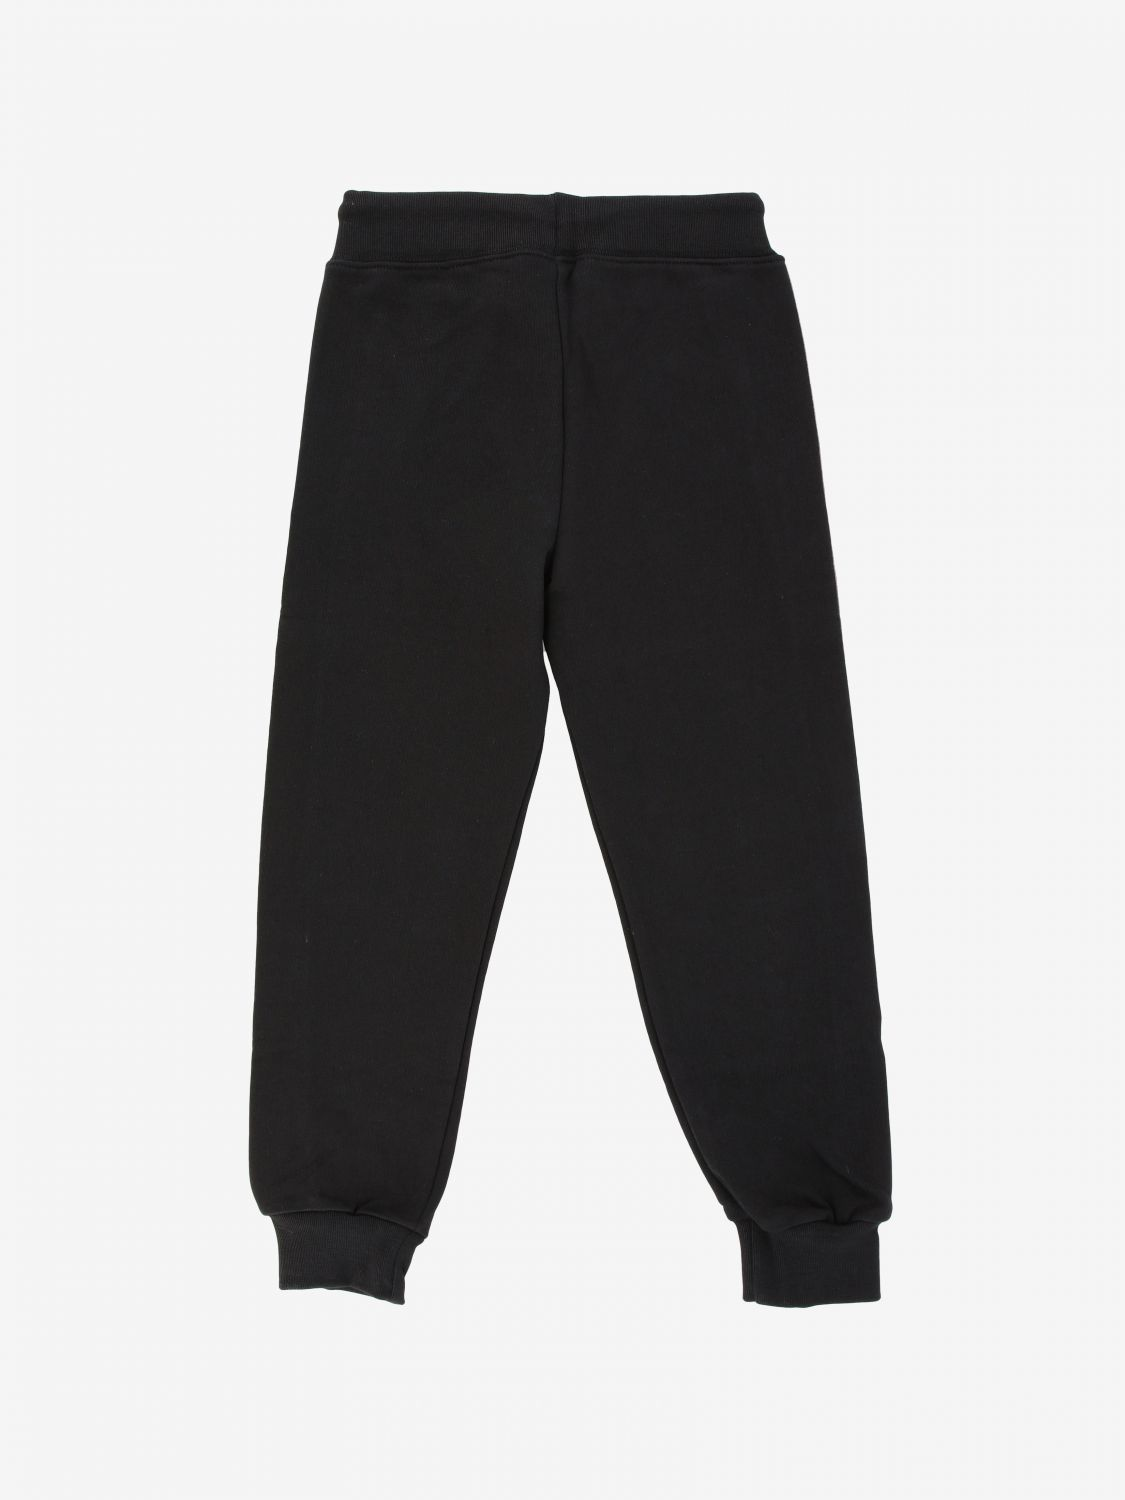 Diadora jogging trousers with logo black 2